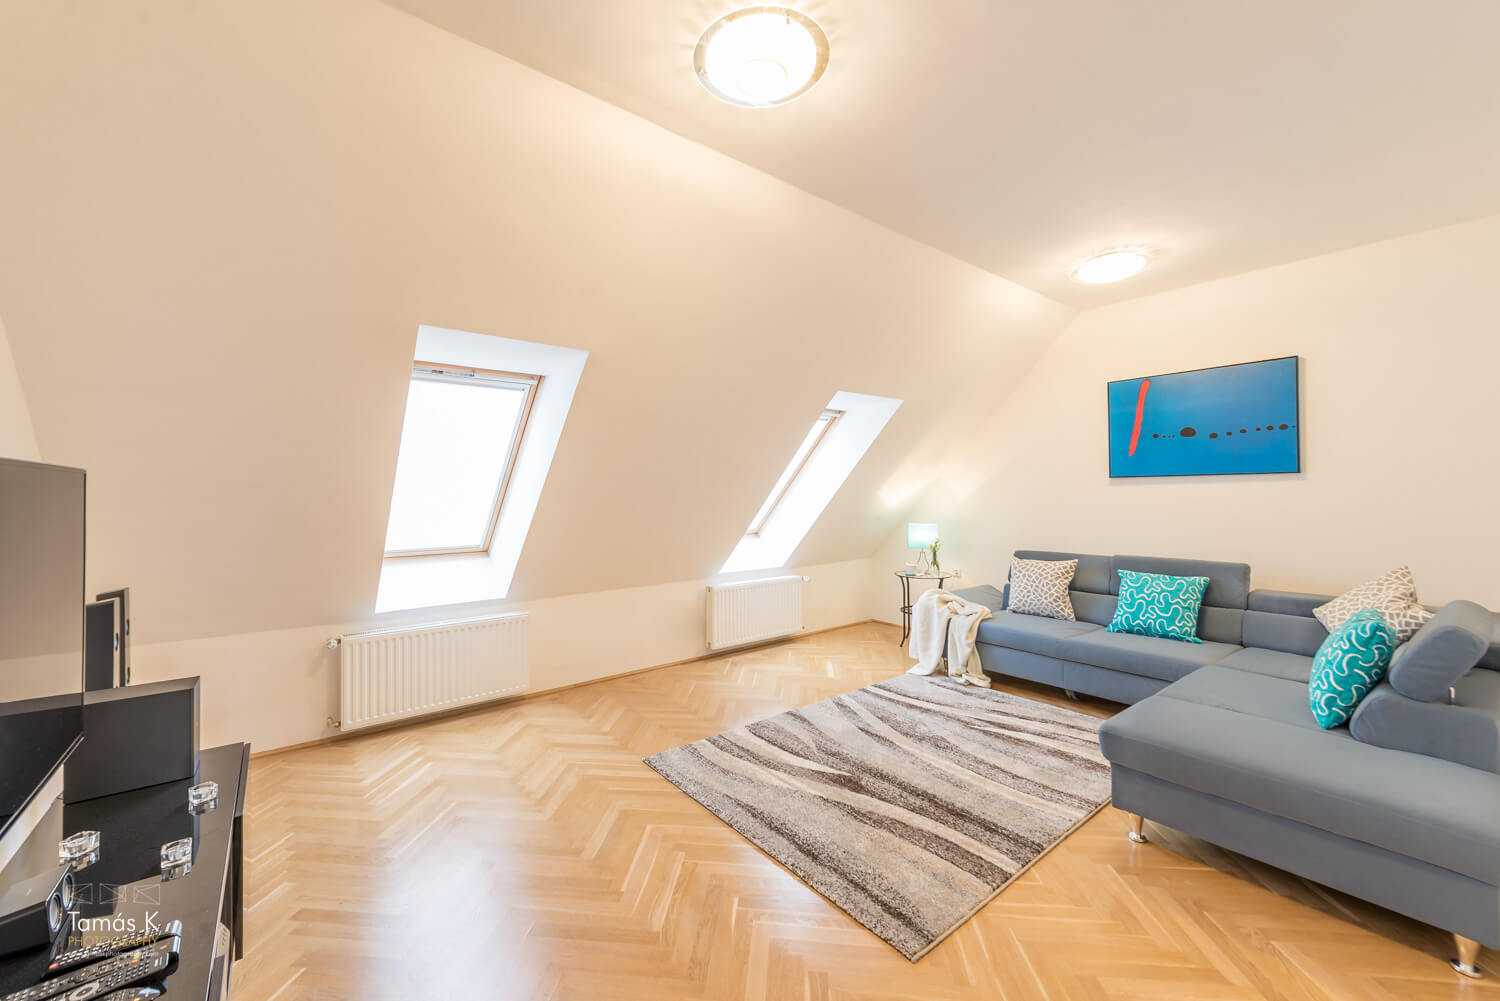 City center apartment Budapest - living area with large sofa bed - attic arrangement